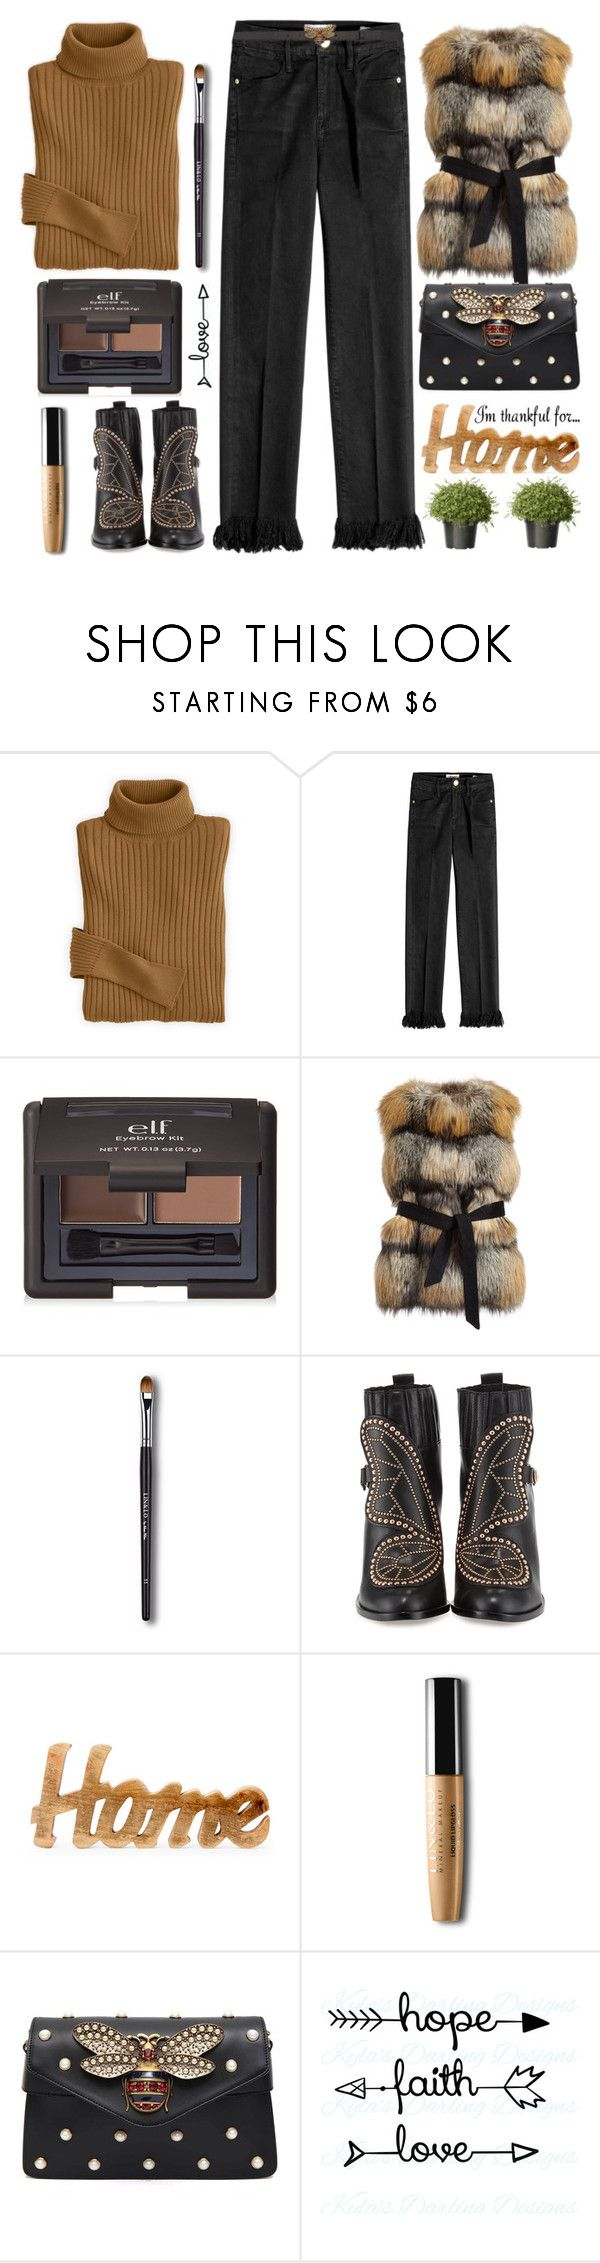 """""""I`m Thankful for..."""" by grozdana-v ❤ liked on Polyvore featuring Frame, e.l.f., Gorski, Sophia Webster, Uma, Gucci, National Tree Company, love, Home and thanksgiving"""